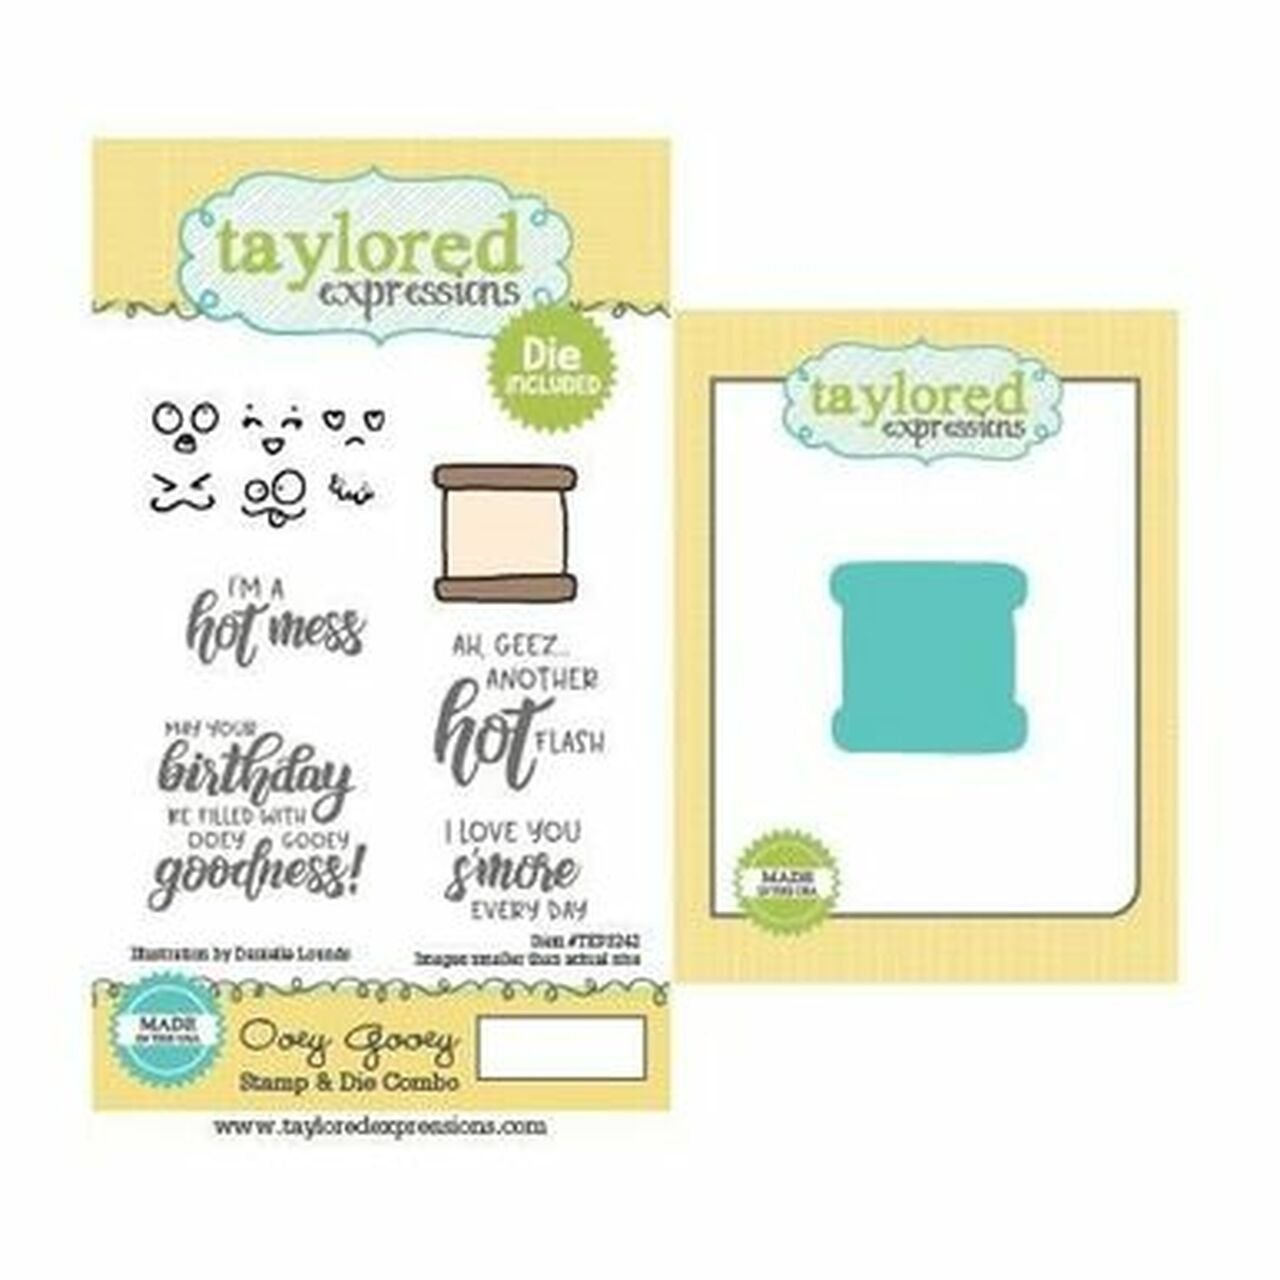 Taylored Expressions-Oey Gooey Stamp & Die Combo Set